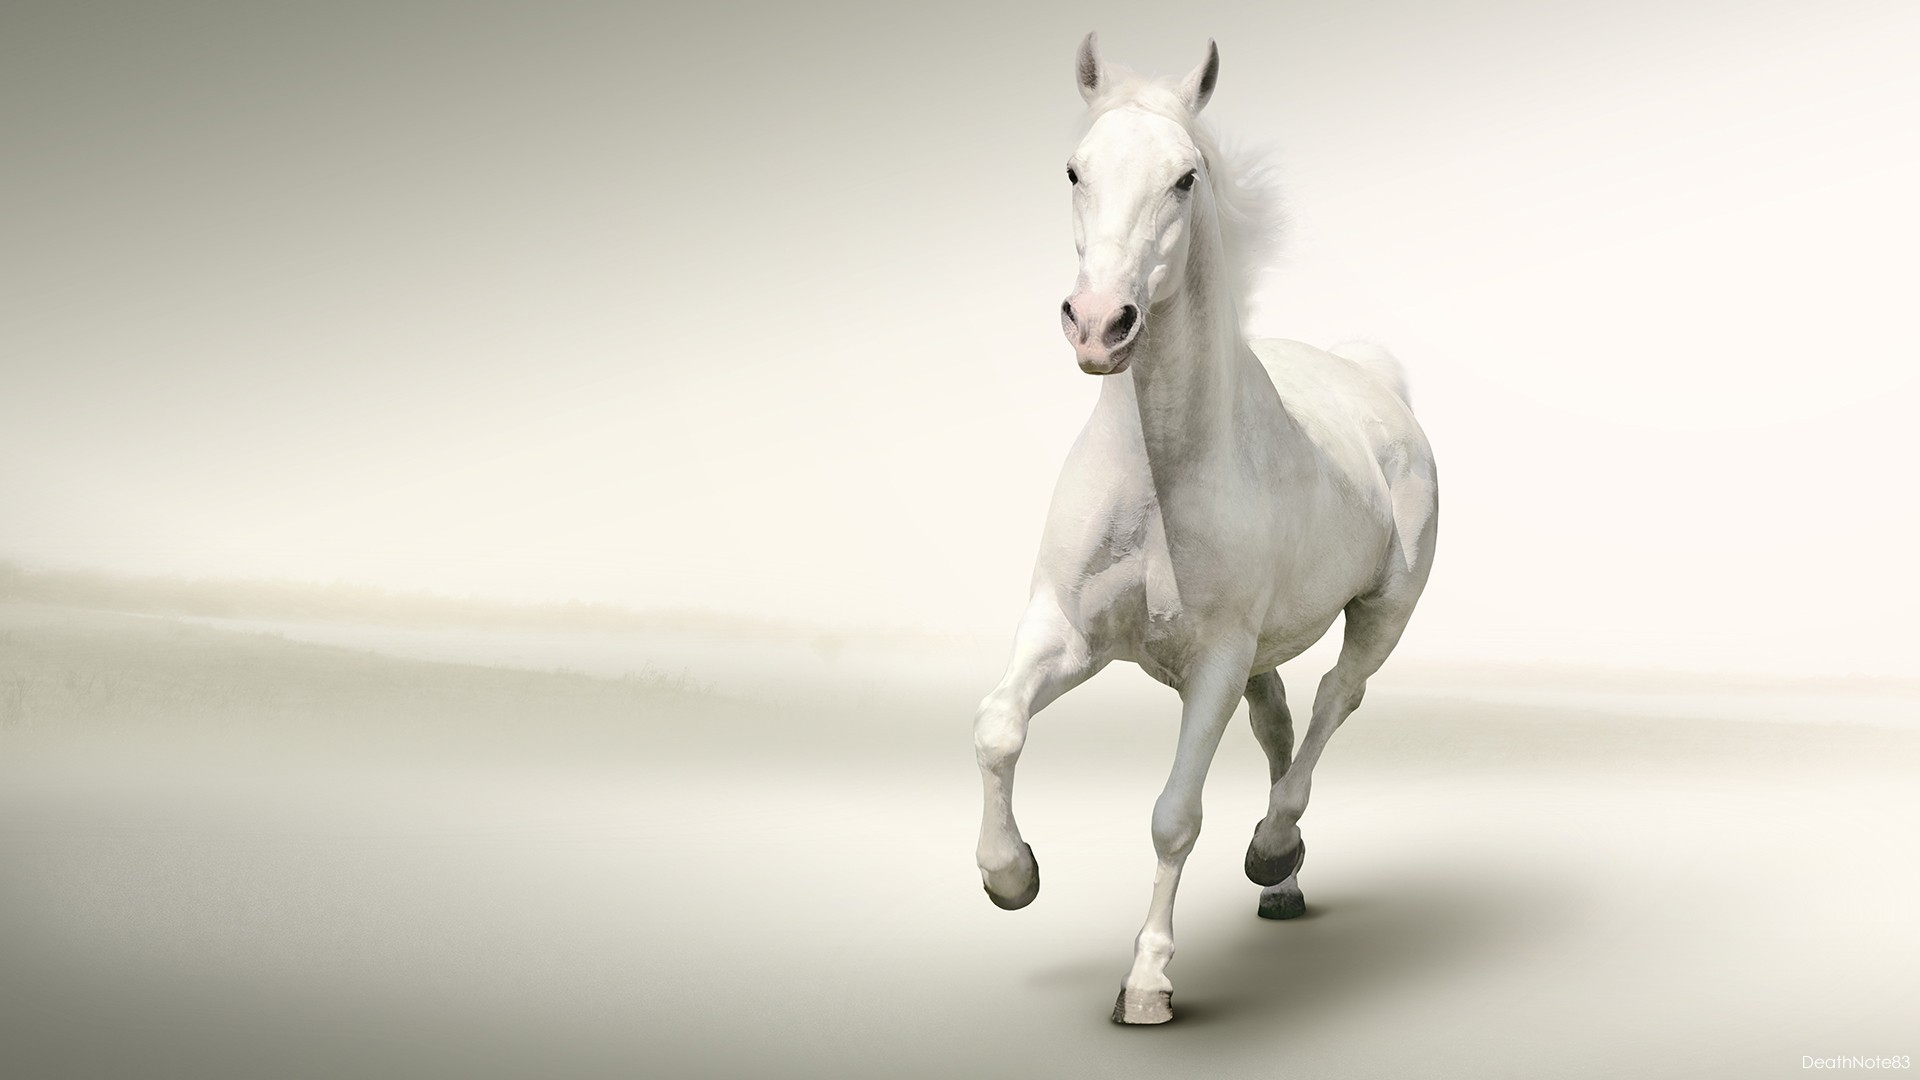 White running horses - photo#25